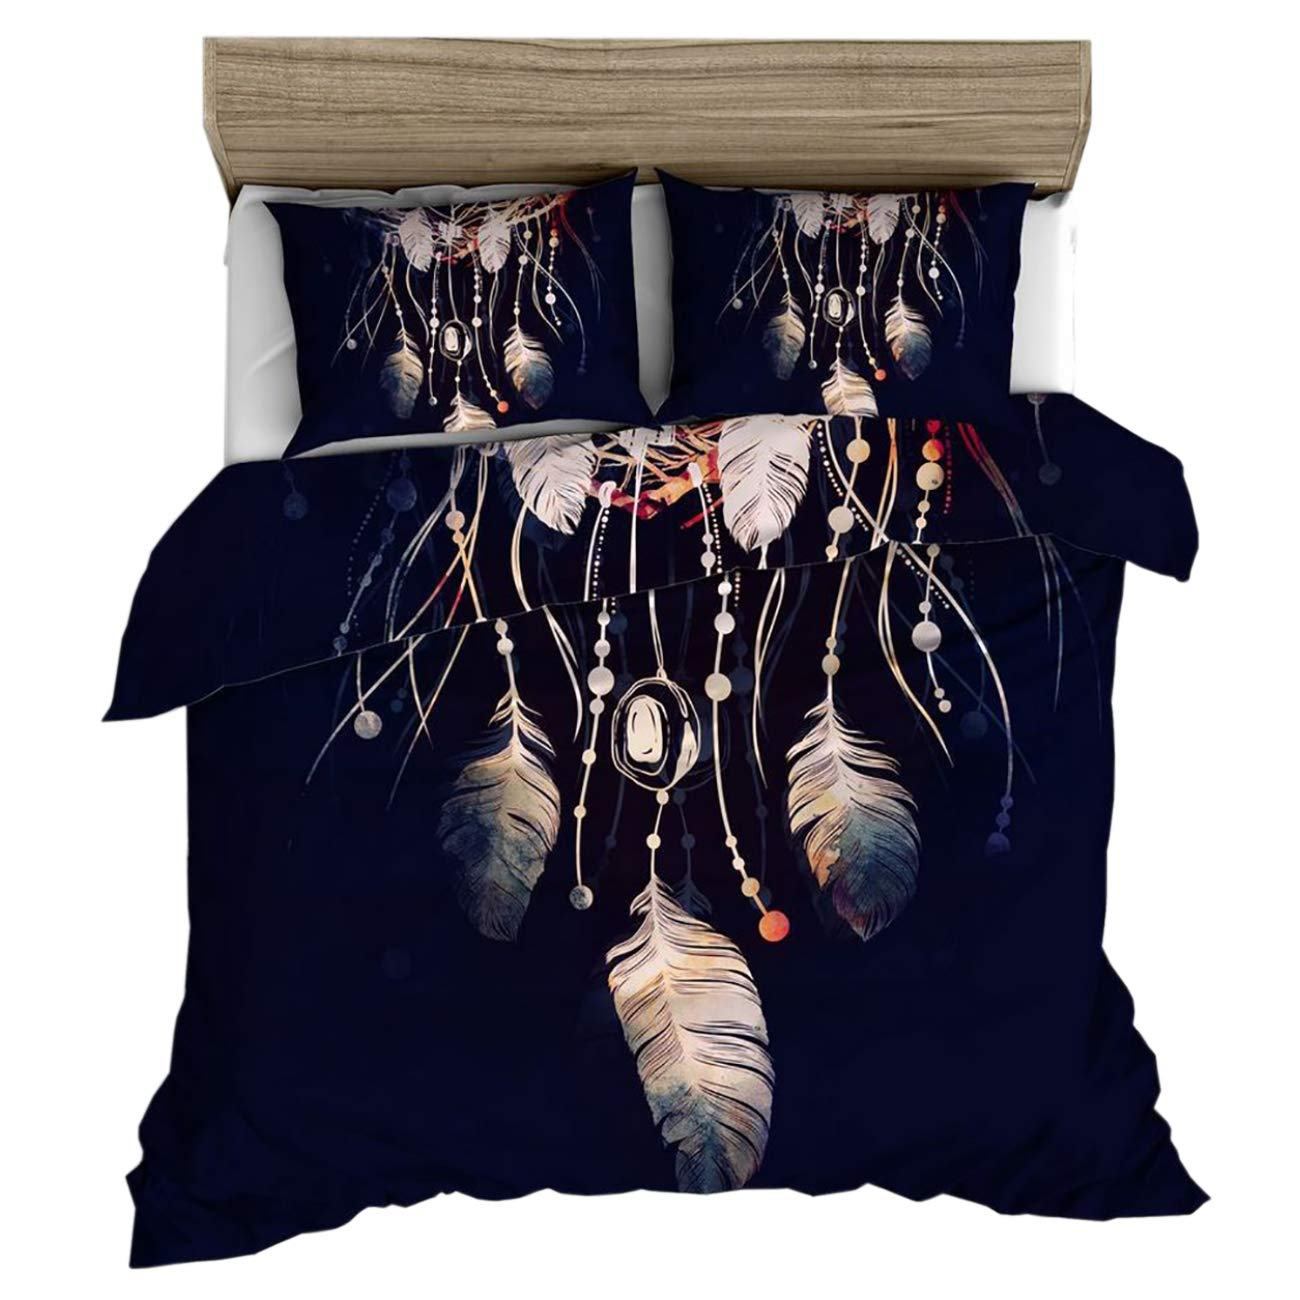 Full ShiyiUP 3D Feather Quilt Cover Bedding Duvet Cover Set with Pillow Case